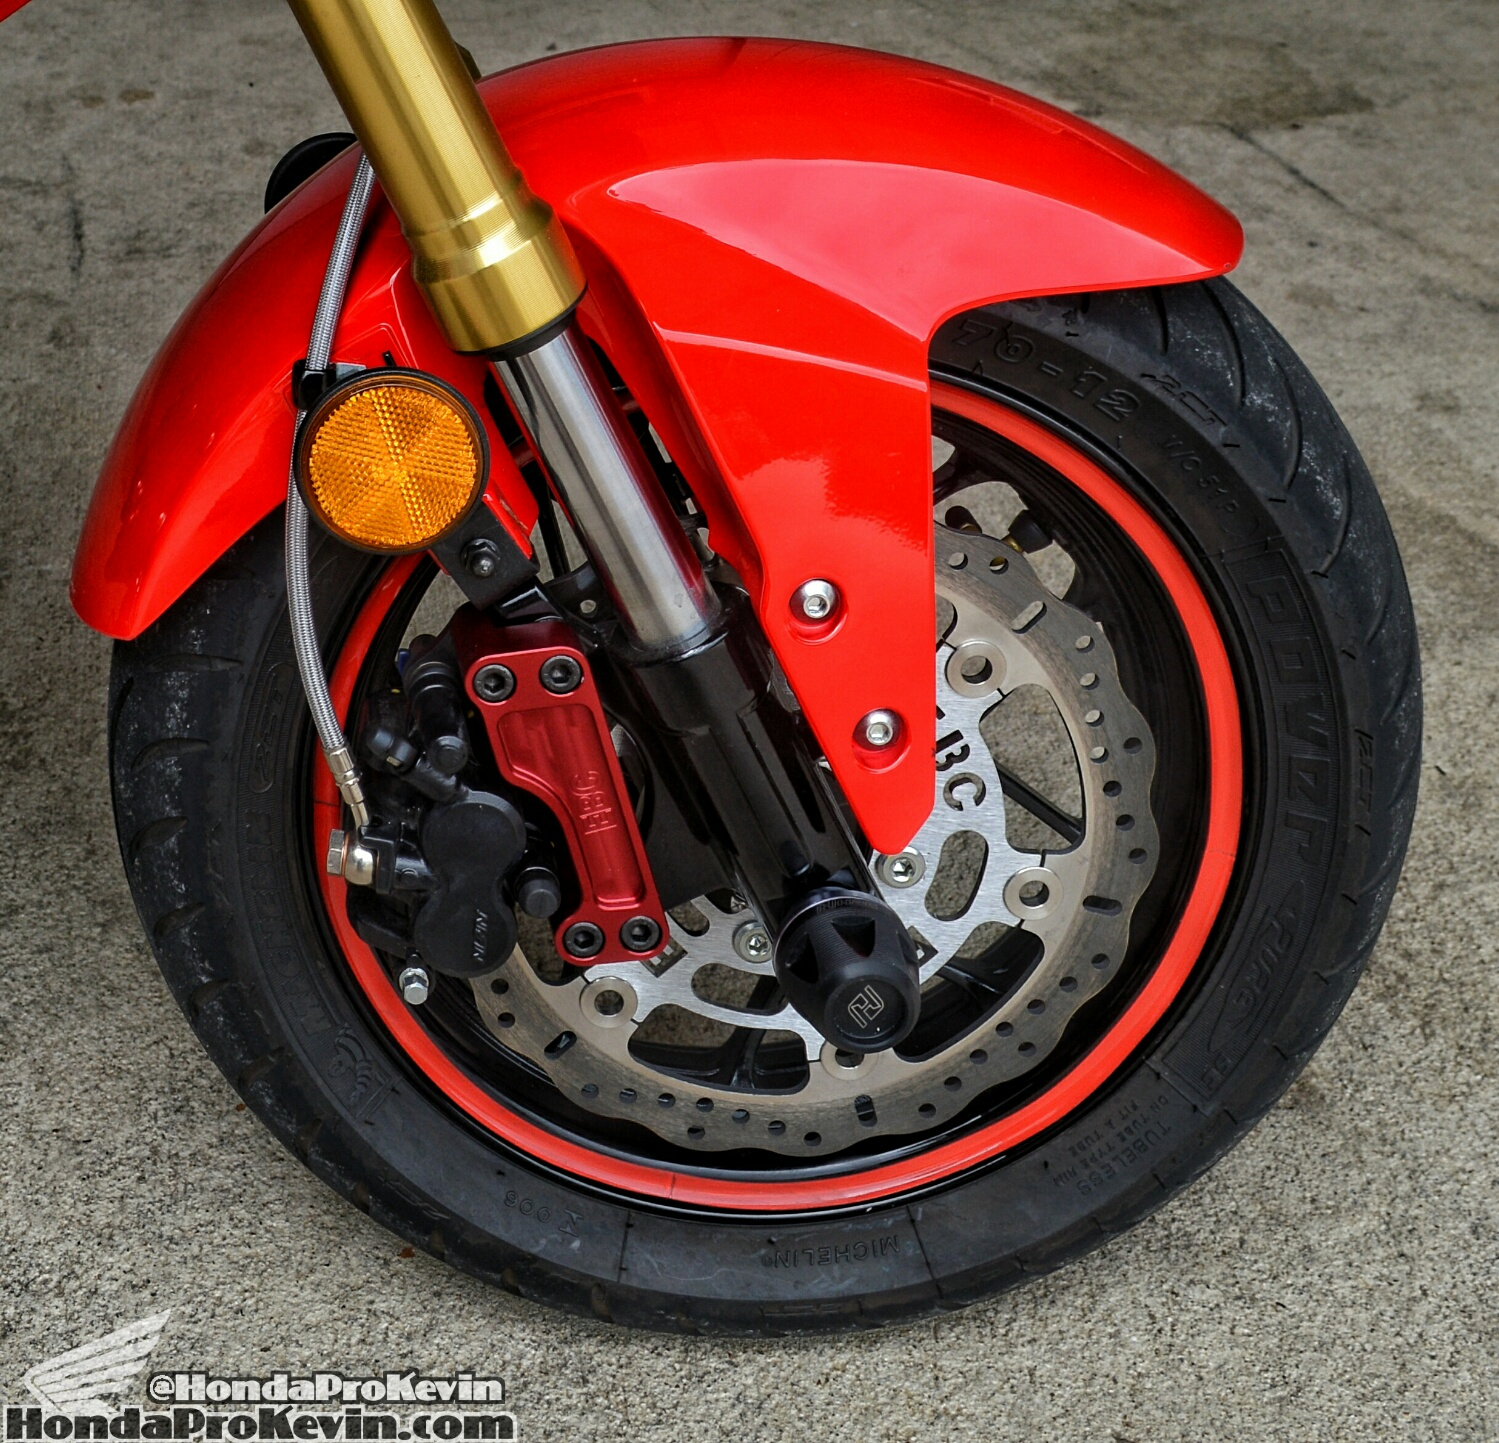 Custom Honda Grom MSX 125 EBC Oversized Front Wave Brake Rotor - Galfer SS Lines - Red Wheel / Rim Tape - Michelin Power Pure SC Tires